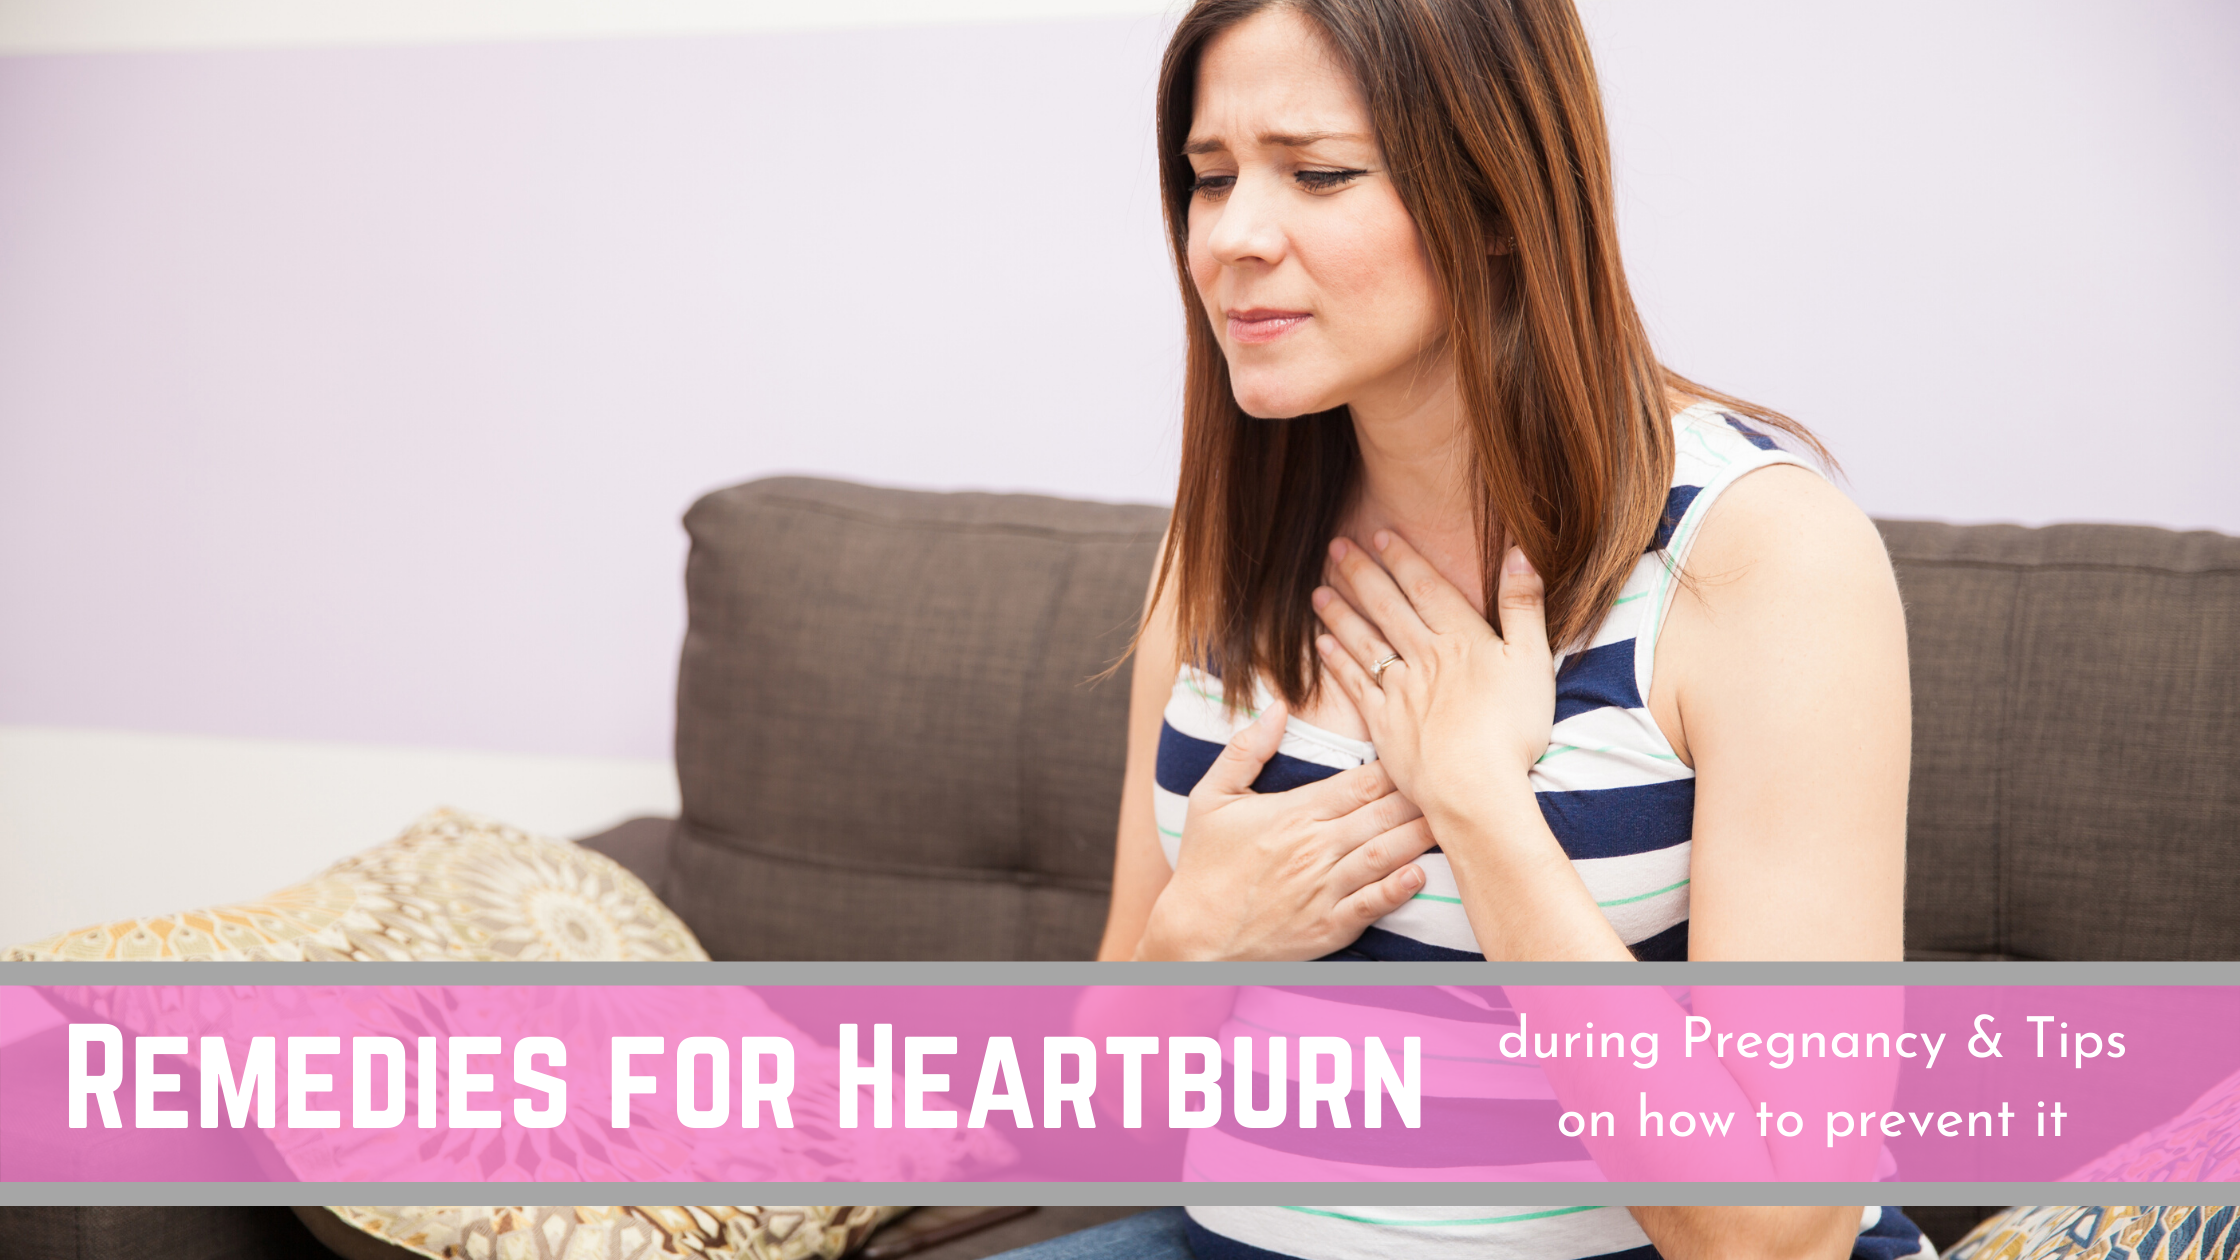 20+ Remedies for Heartburn during Pregnancy and Tips on how to prevent it: including Home and Natural Remedies.